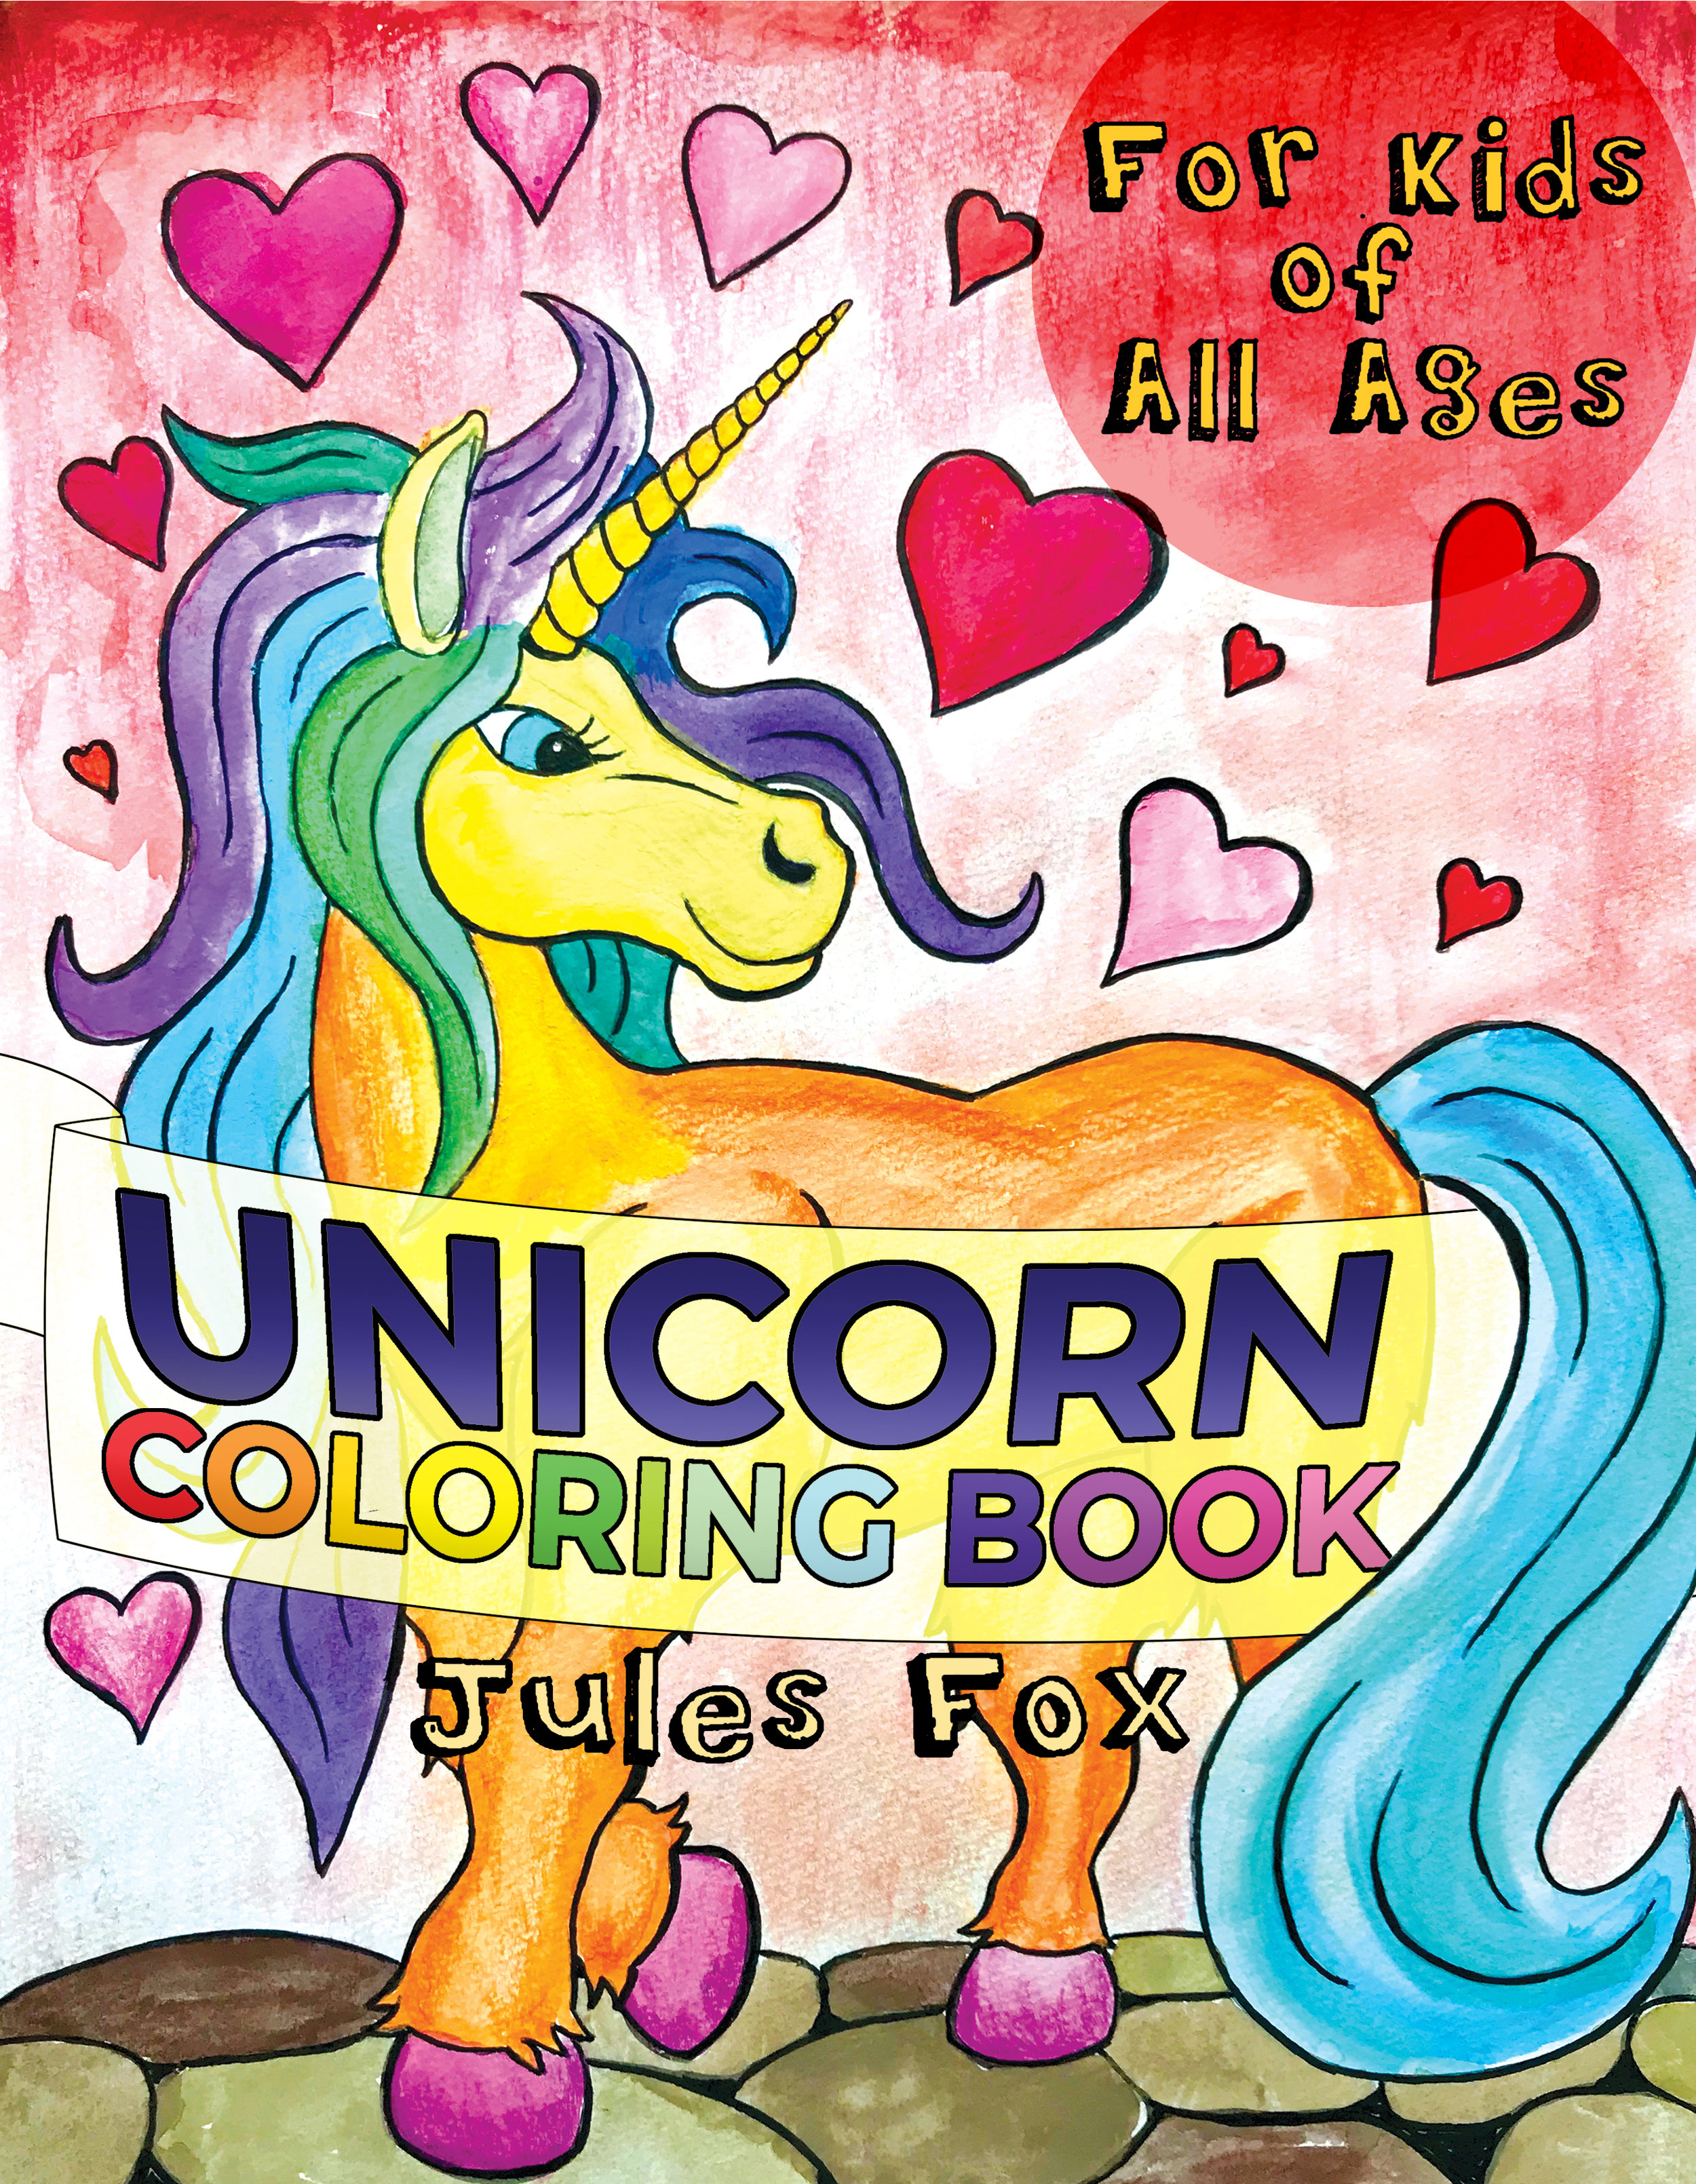 The Unicorn Coloring Book for Kids of All Ages   Filled with 29 hand-drawn Fantasy Unicorns, this appropriate for all ages coloring book is ready for Unicorn lovers to embrace it, and go wild with colors! The perfect gift for Unicorn lovers who want something more than stock art in their coloring books.  ***  We proudly use Amazon affiliate links on this website, most of which link to works created by us!